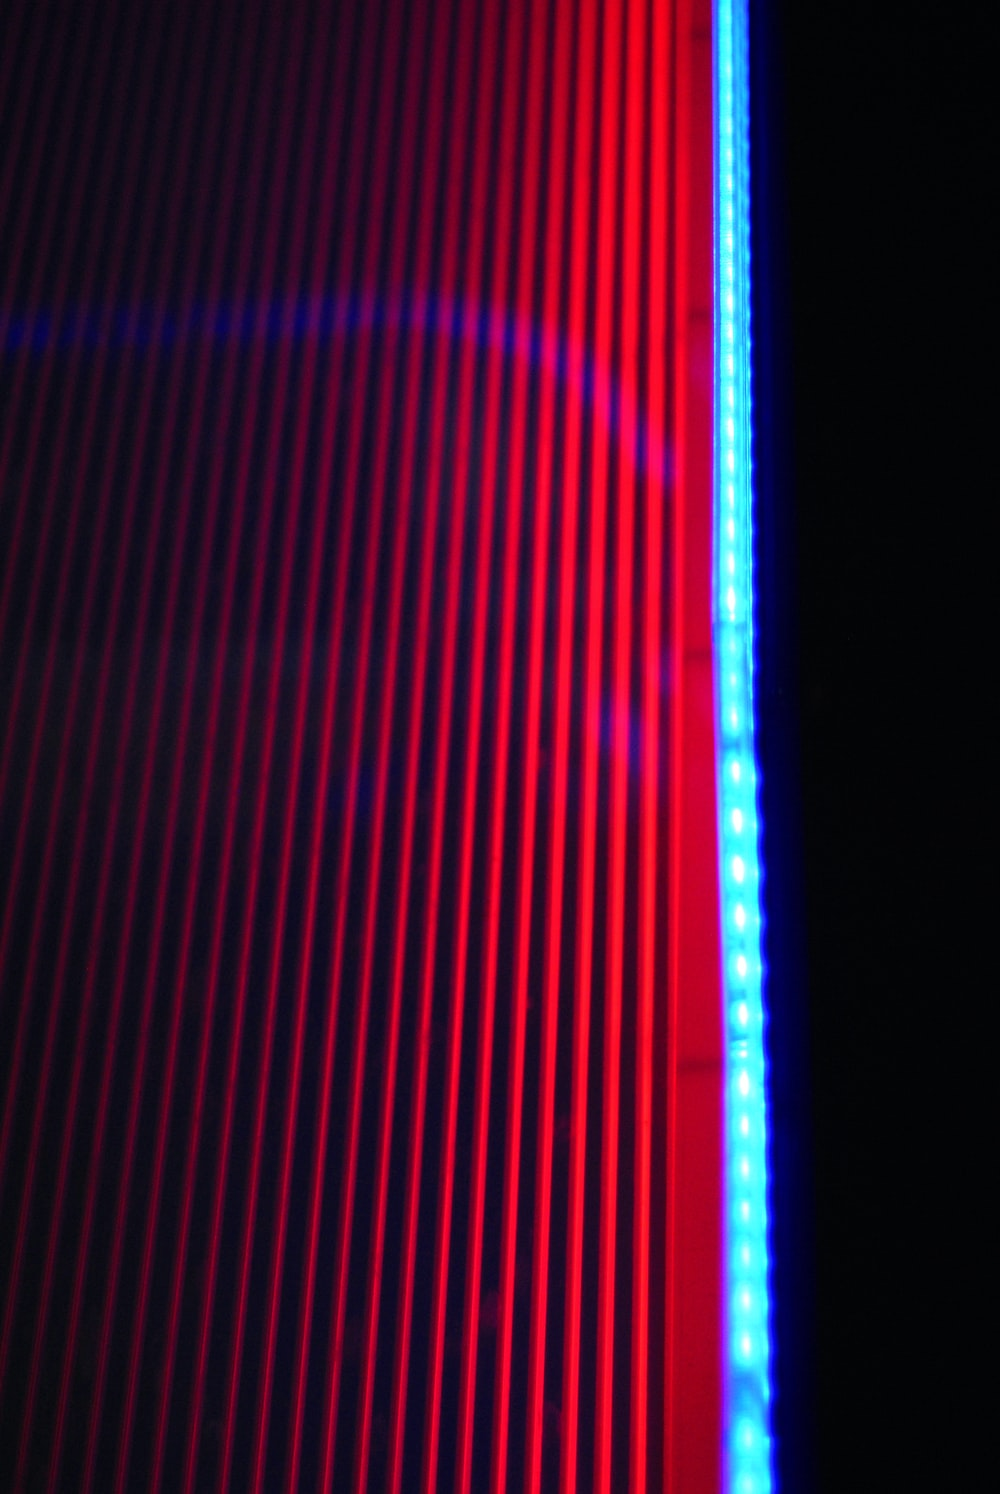 blue and black screen with blue light